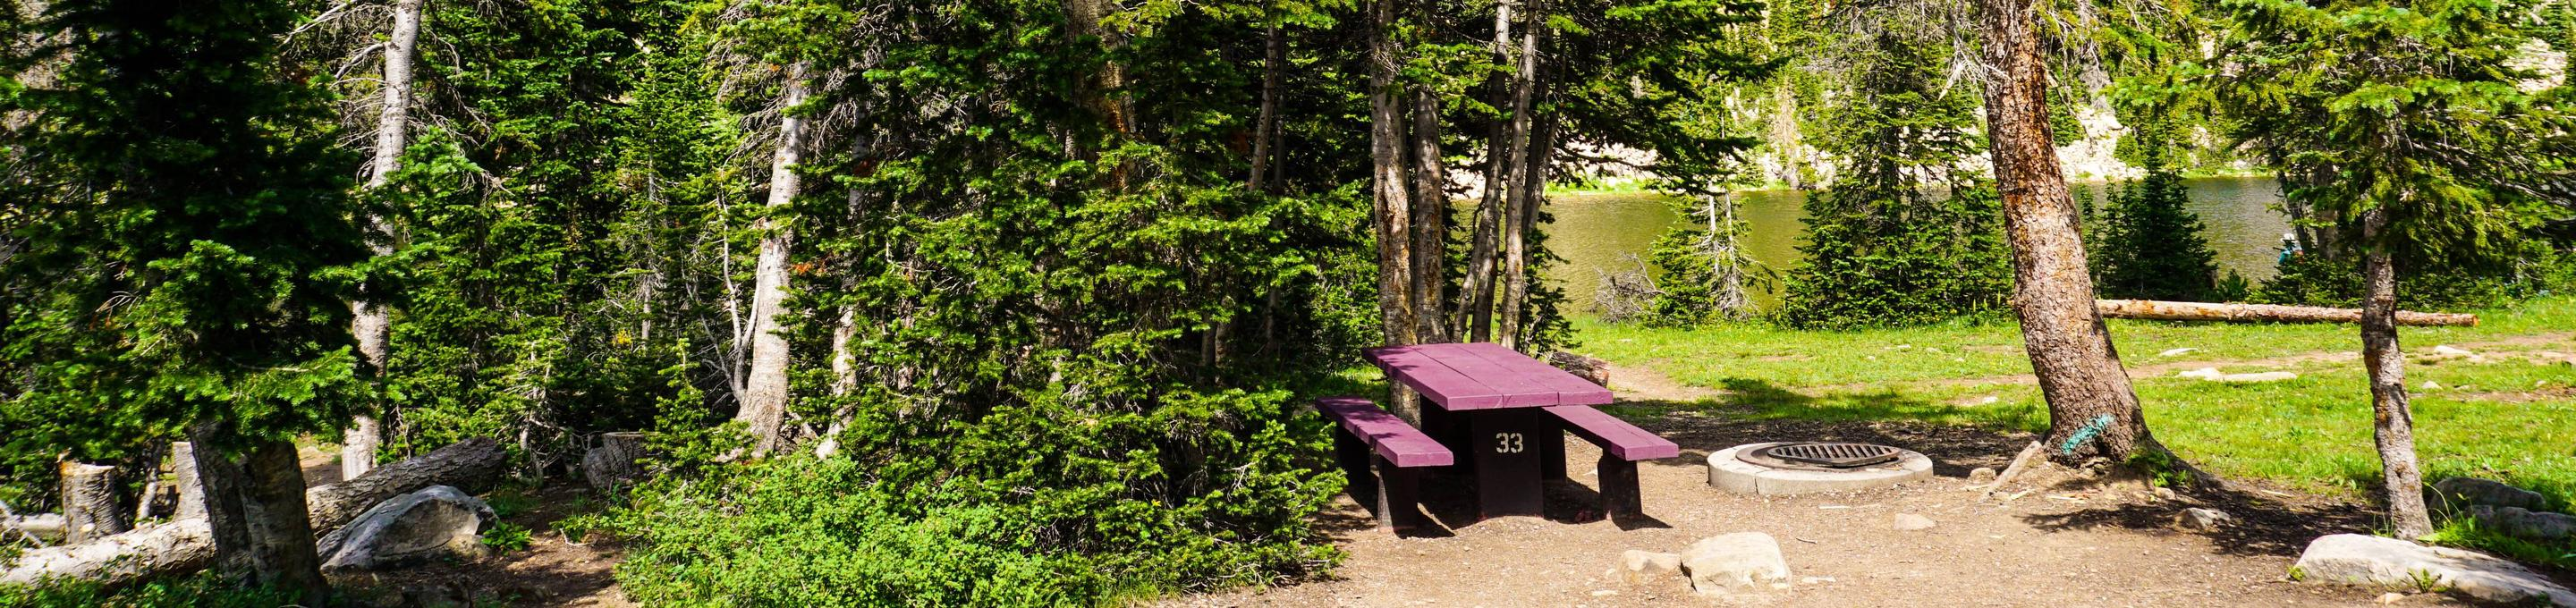 Moosehorn Campground - 033